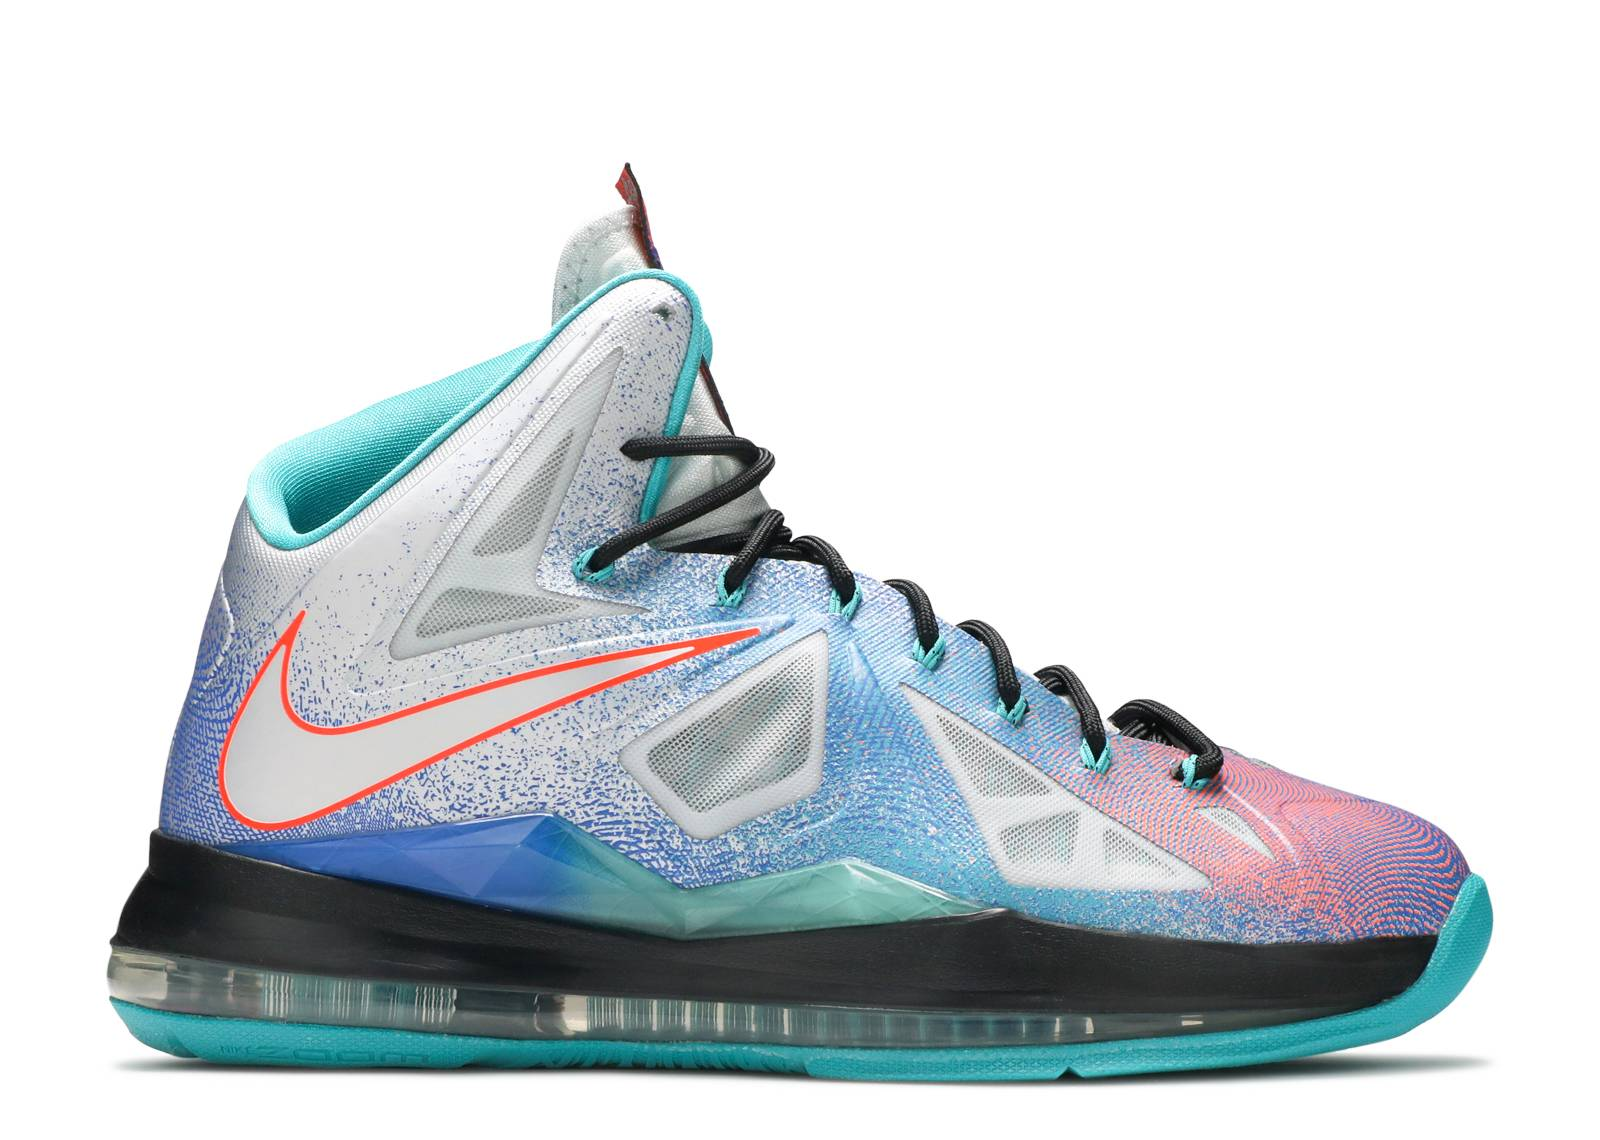 NIKE LEBRON - LeBron James - Shoes